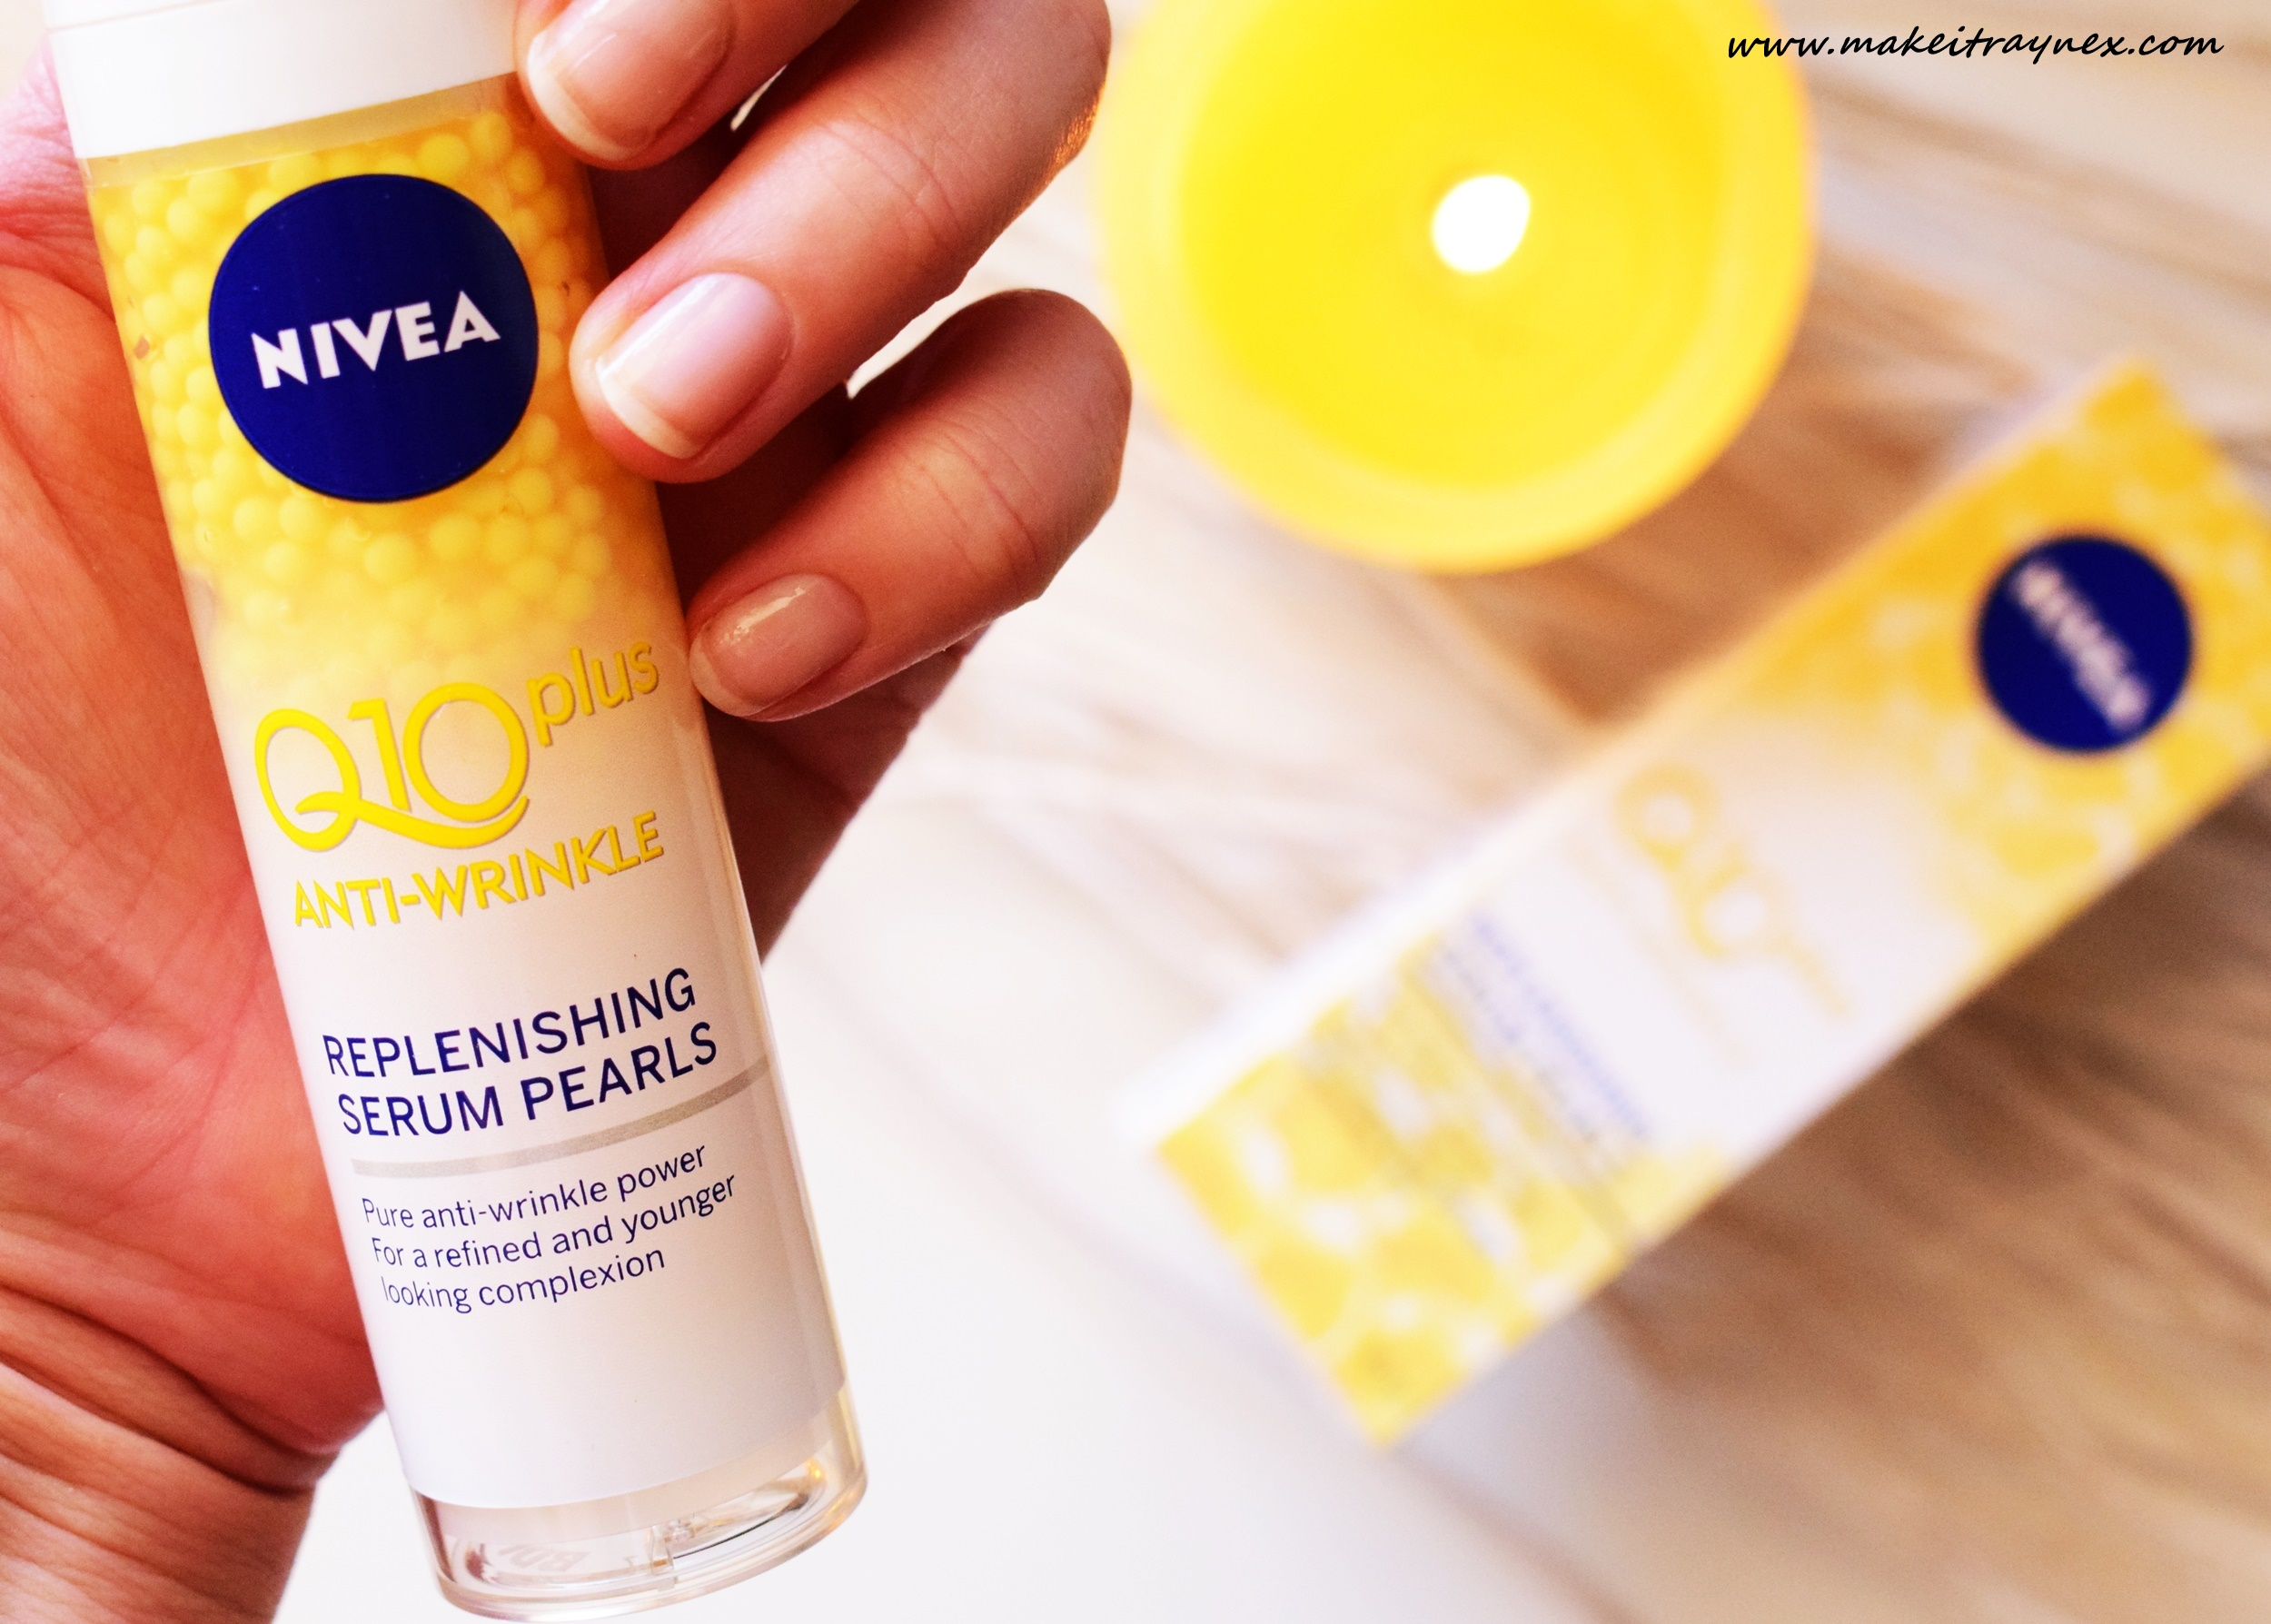 Q10 Plus Anti-Wrinkle Replenishing Serum Pearls from NIVEA {REVIEW}